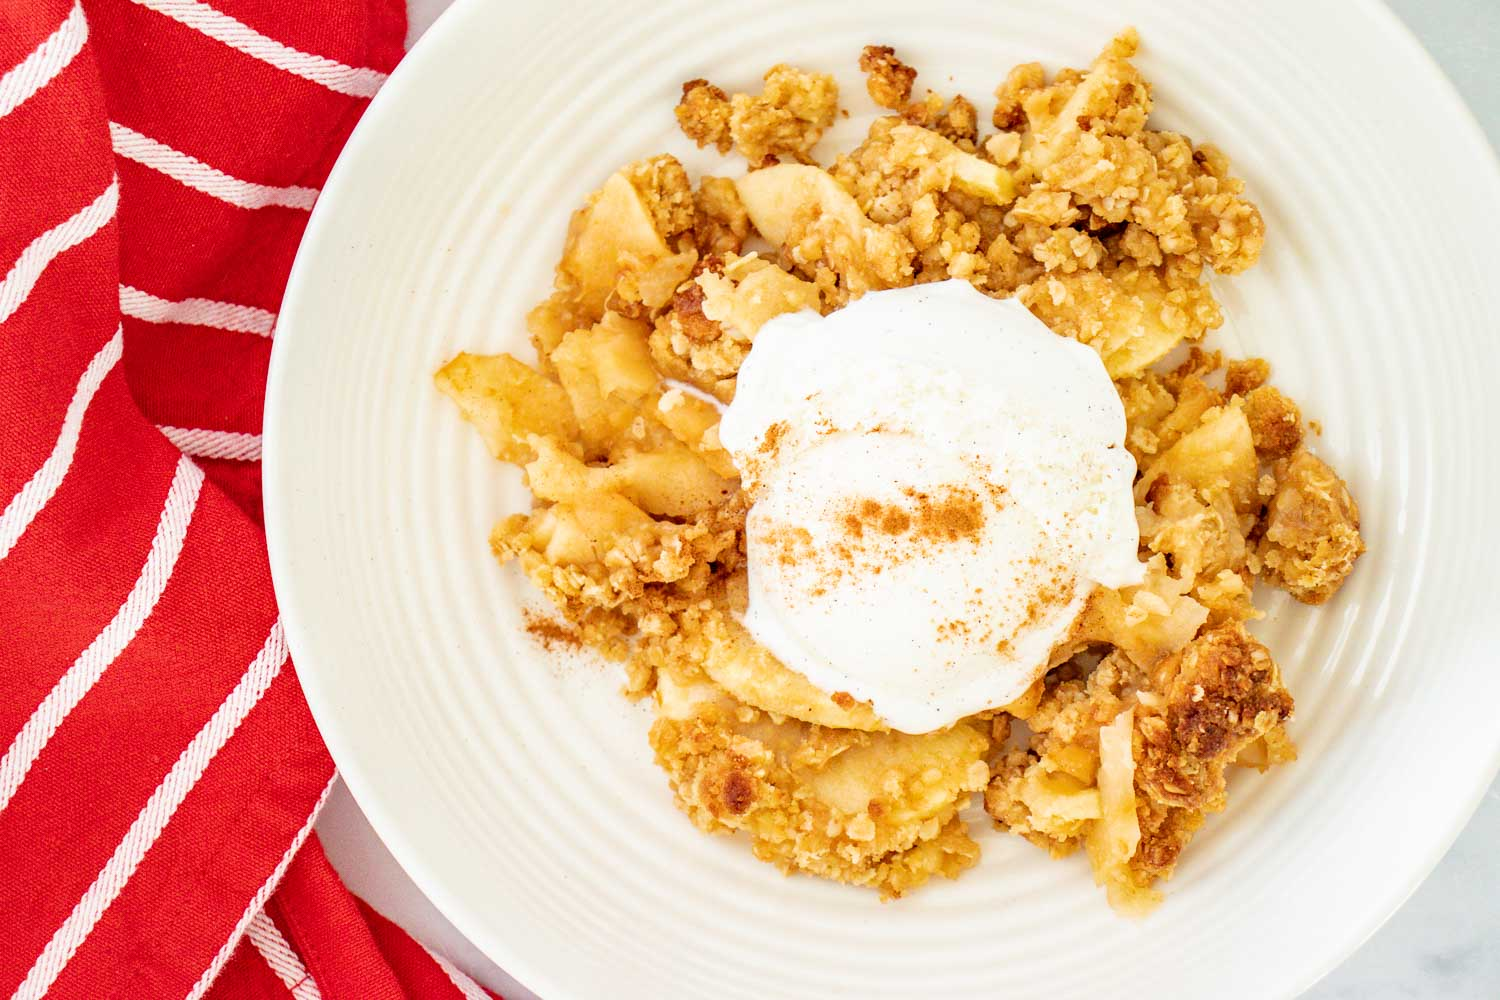 white plate with apple crisp and a scoop of vanilla icecream sprinkled with cinnamon and a red napkin